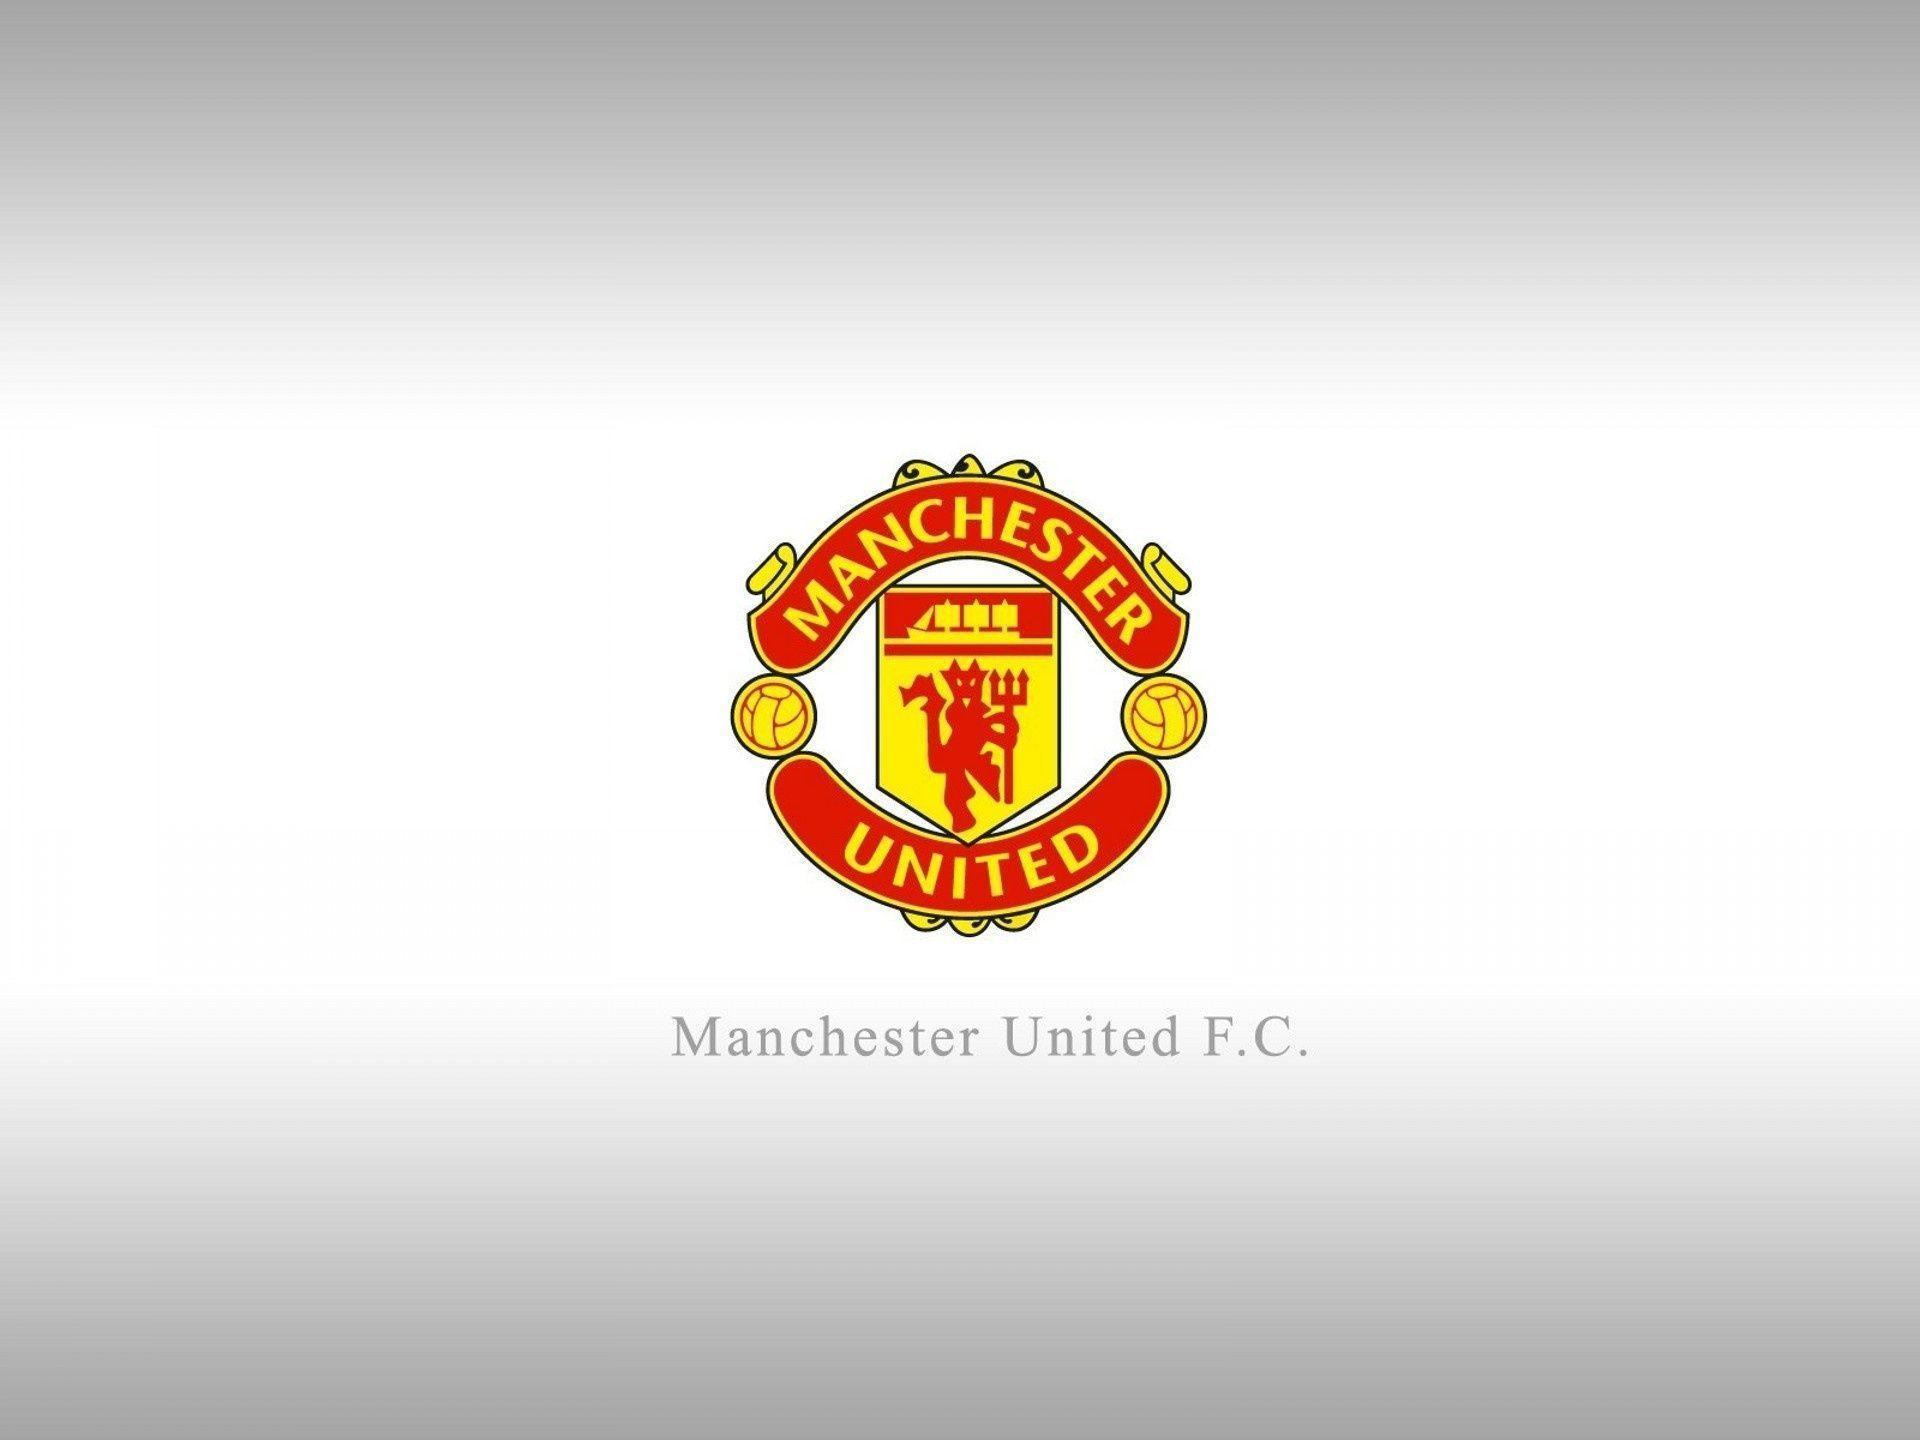 Manchester United HD Wallpaper For PC #13188 Wallpaper | Risewall.